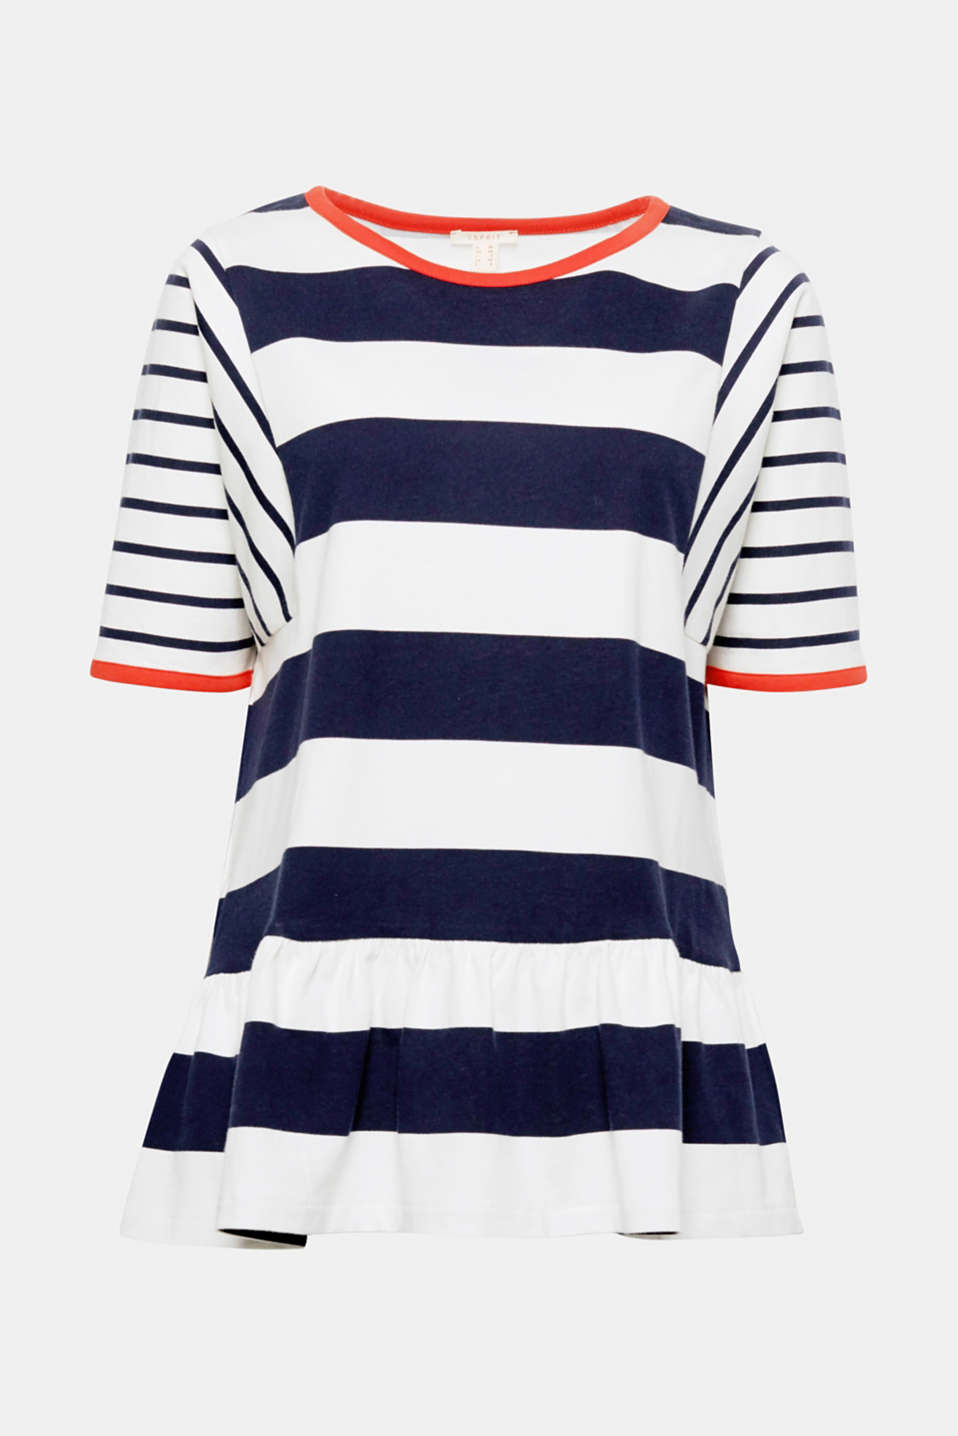 The modern mix of stripes, wide oversized form and the set-in peplum give this oversized top its individual look!